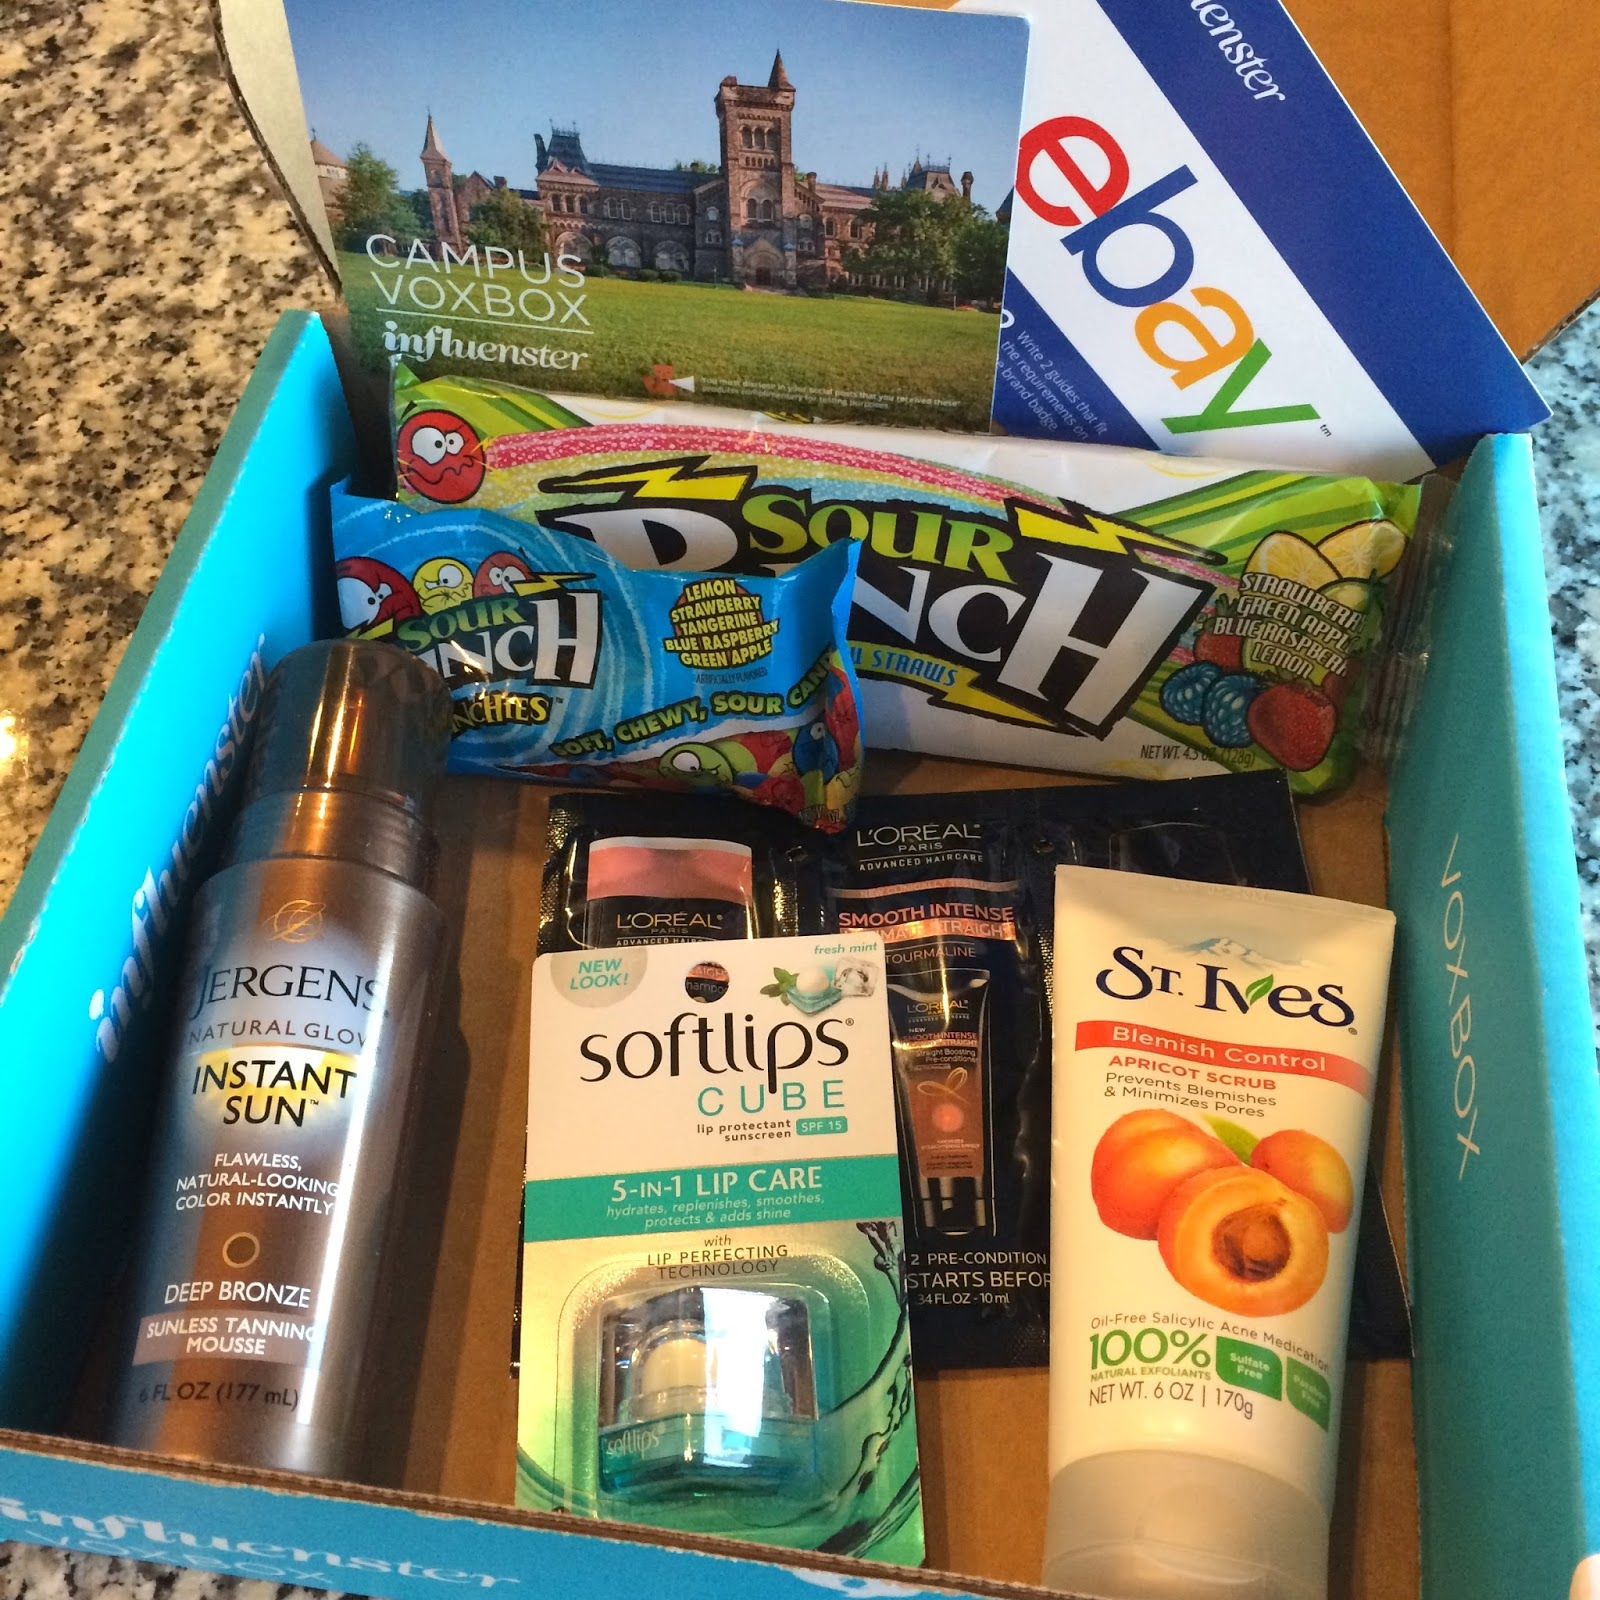 beauty, influenster campus voxbox, jargons natural glow, sour punch, soft lips cube, loreal ultimate straight, stoves blemish control apricot scrub,